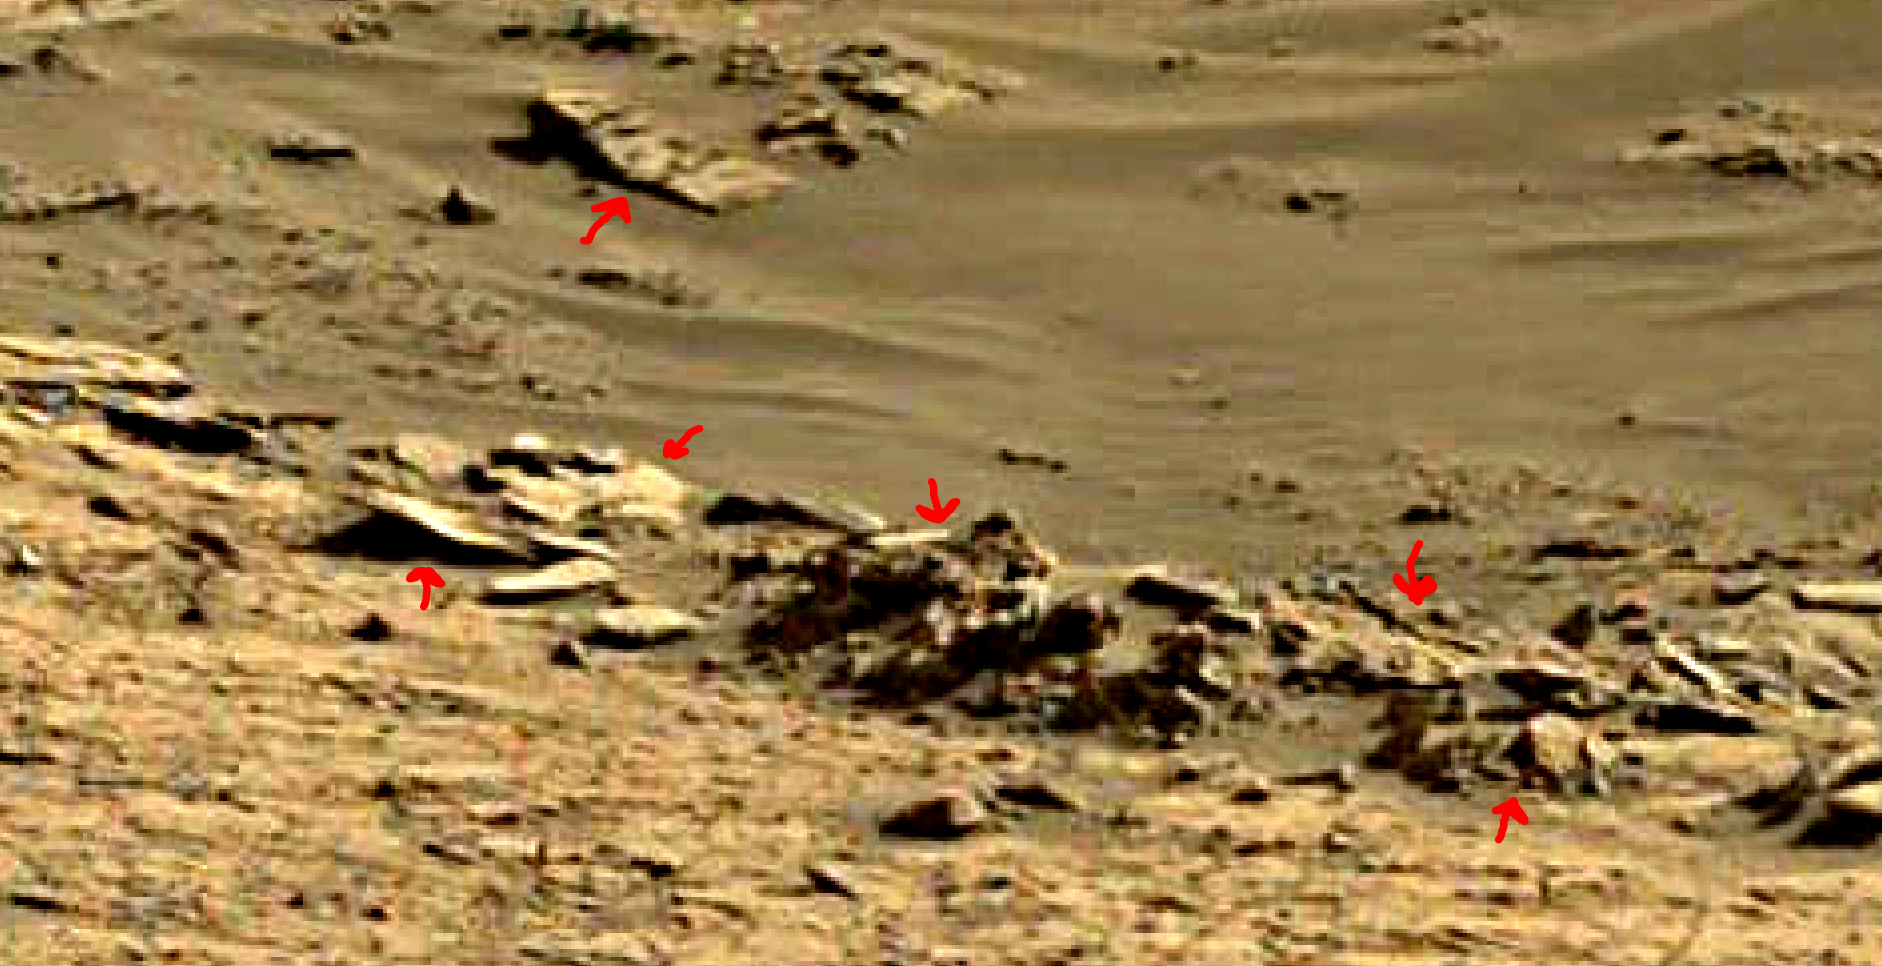 mars sol 1376 anomaly-artifacts 6a was life on mars